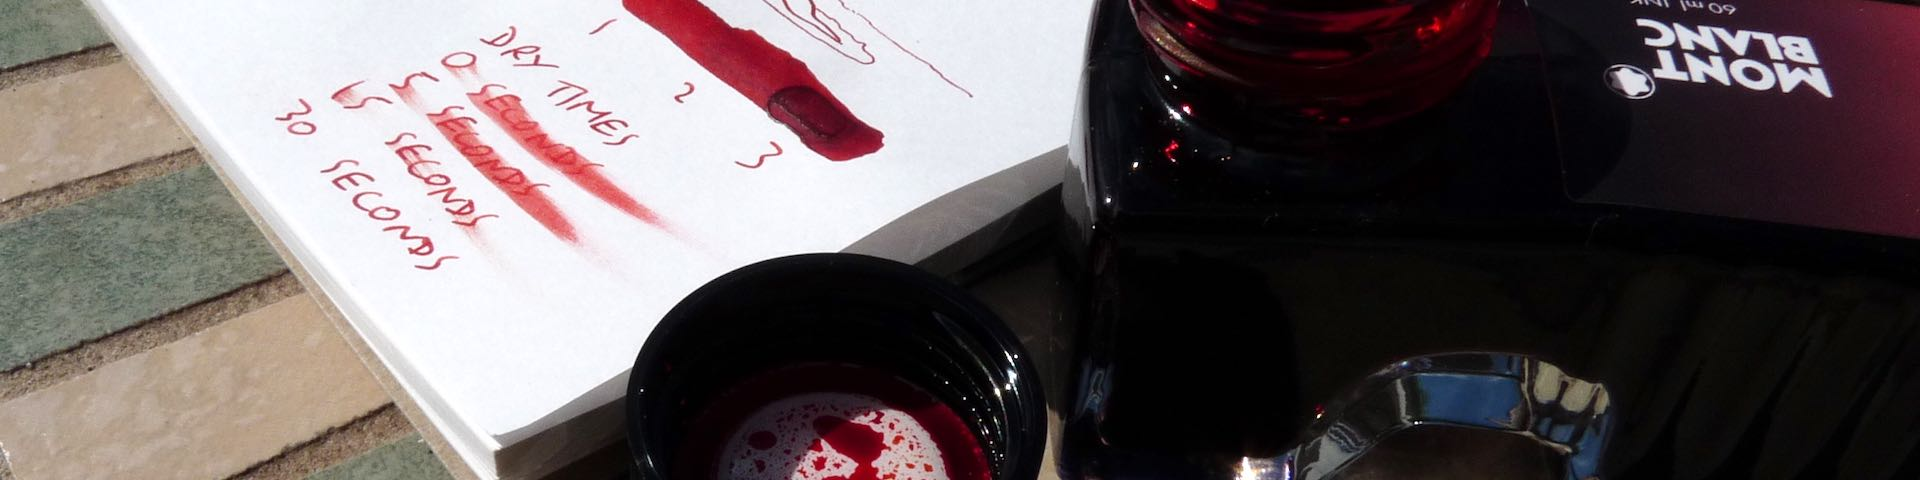 Montblanc Corn Poppy Red featured